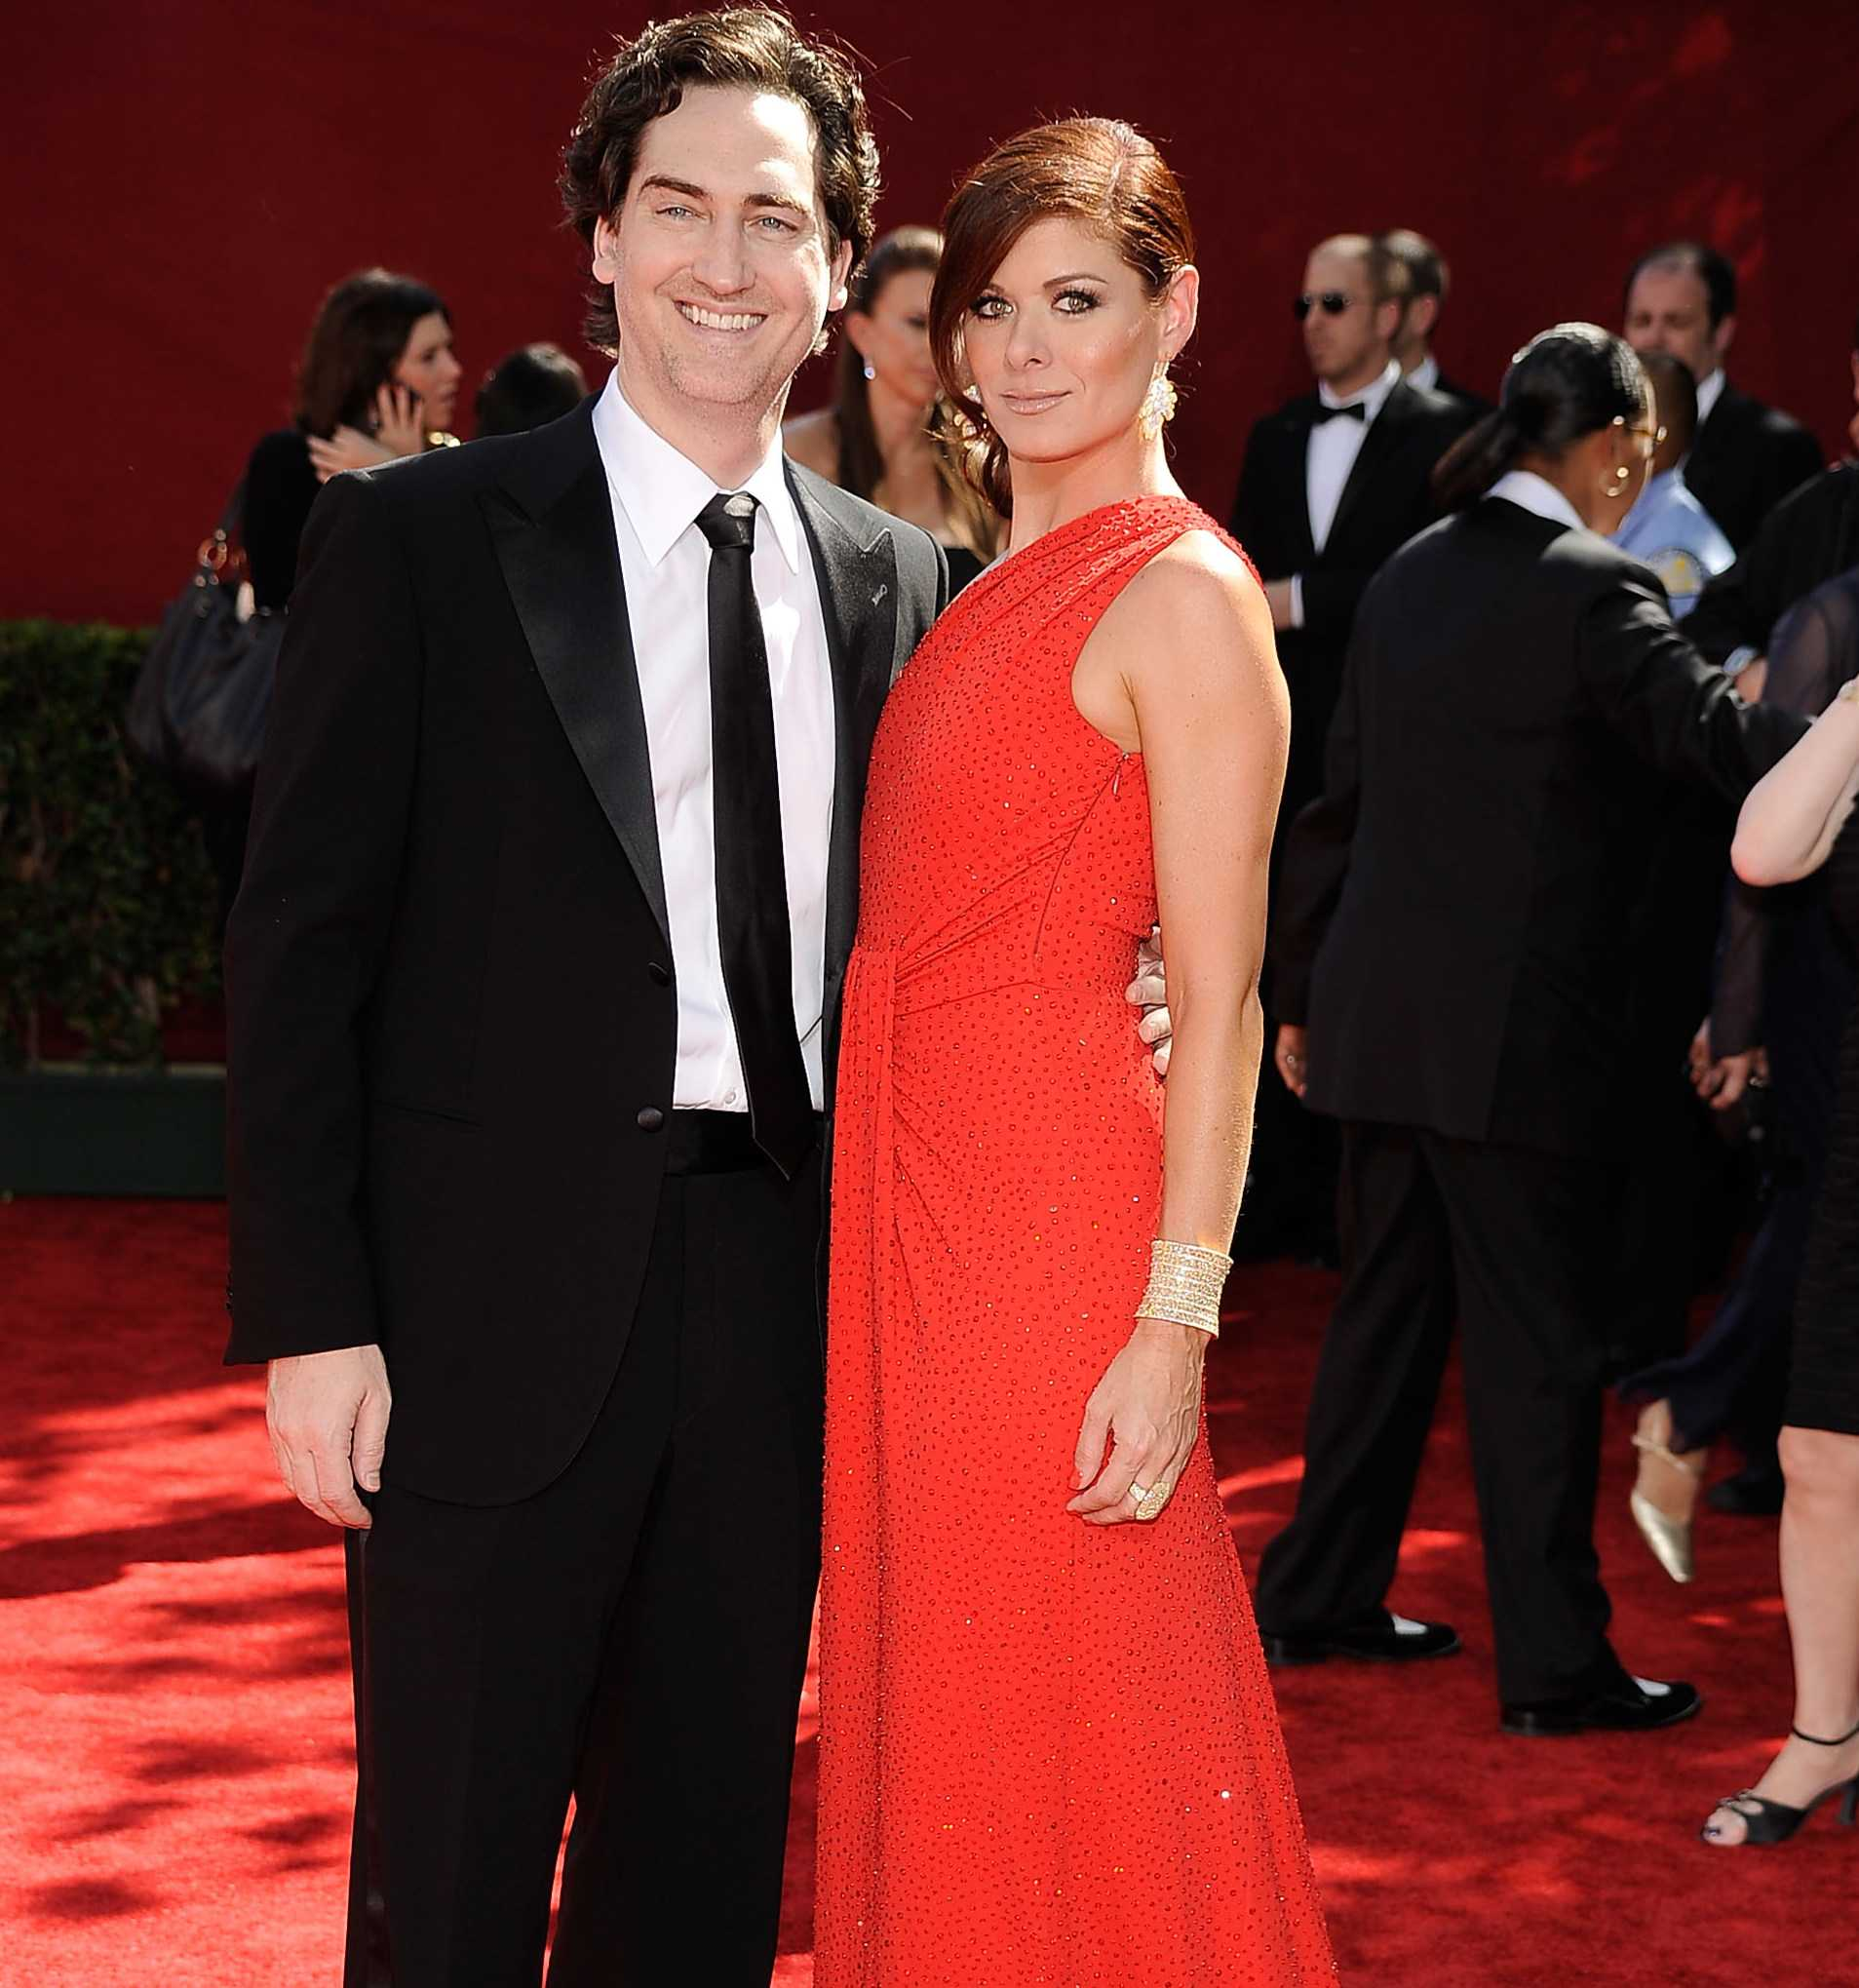 Debra Messing Husband